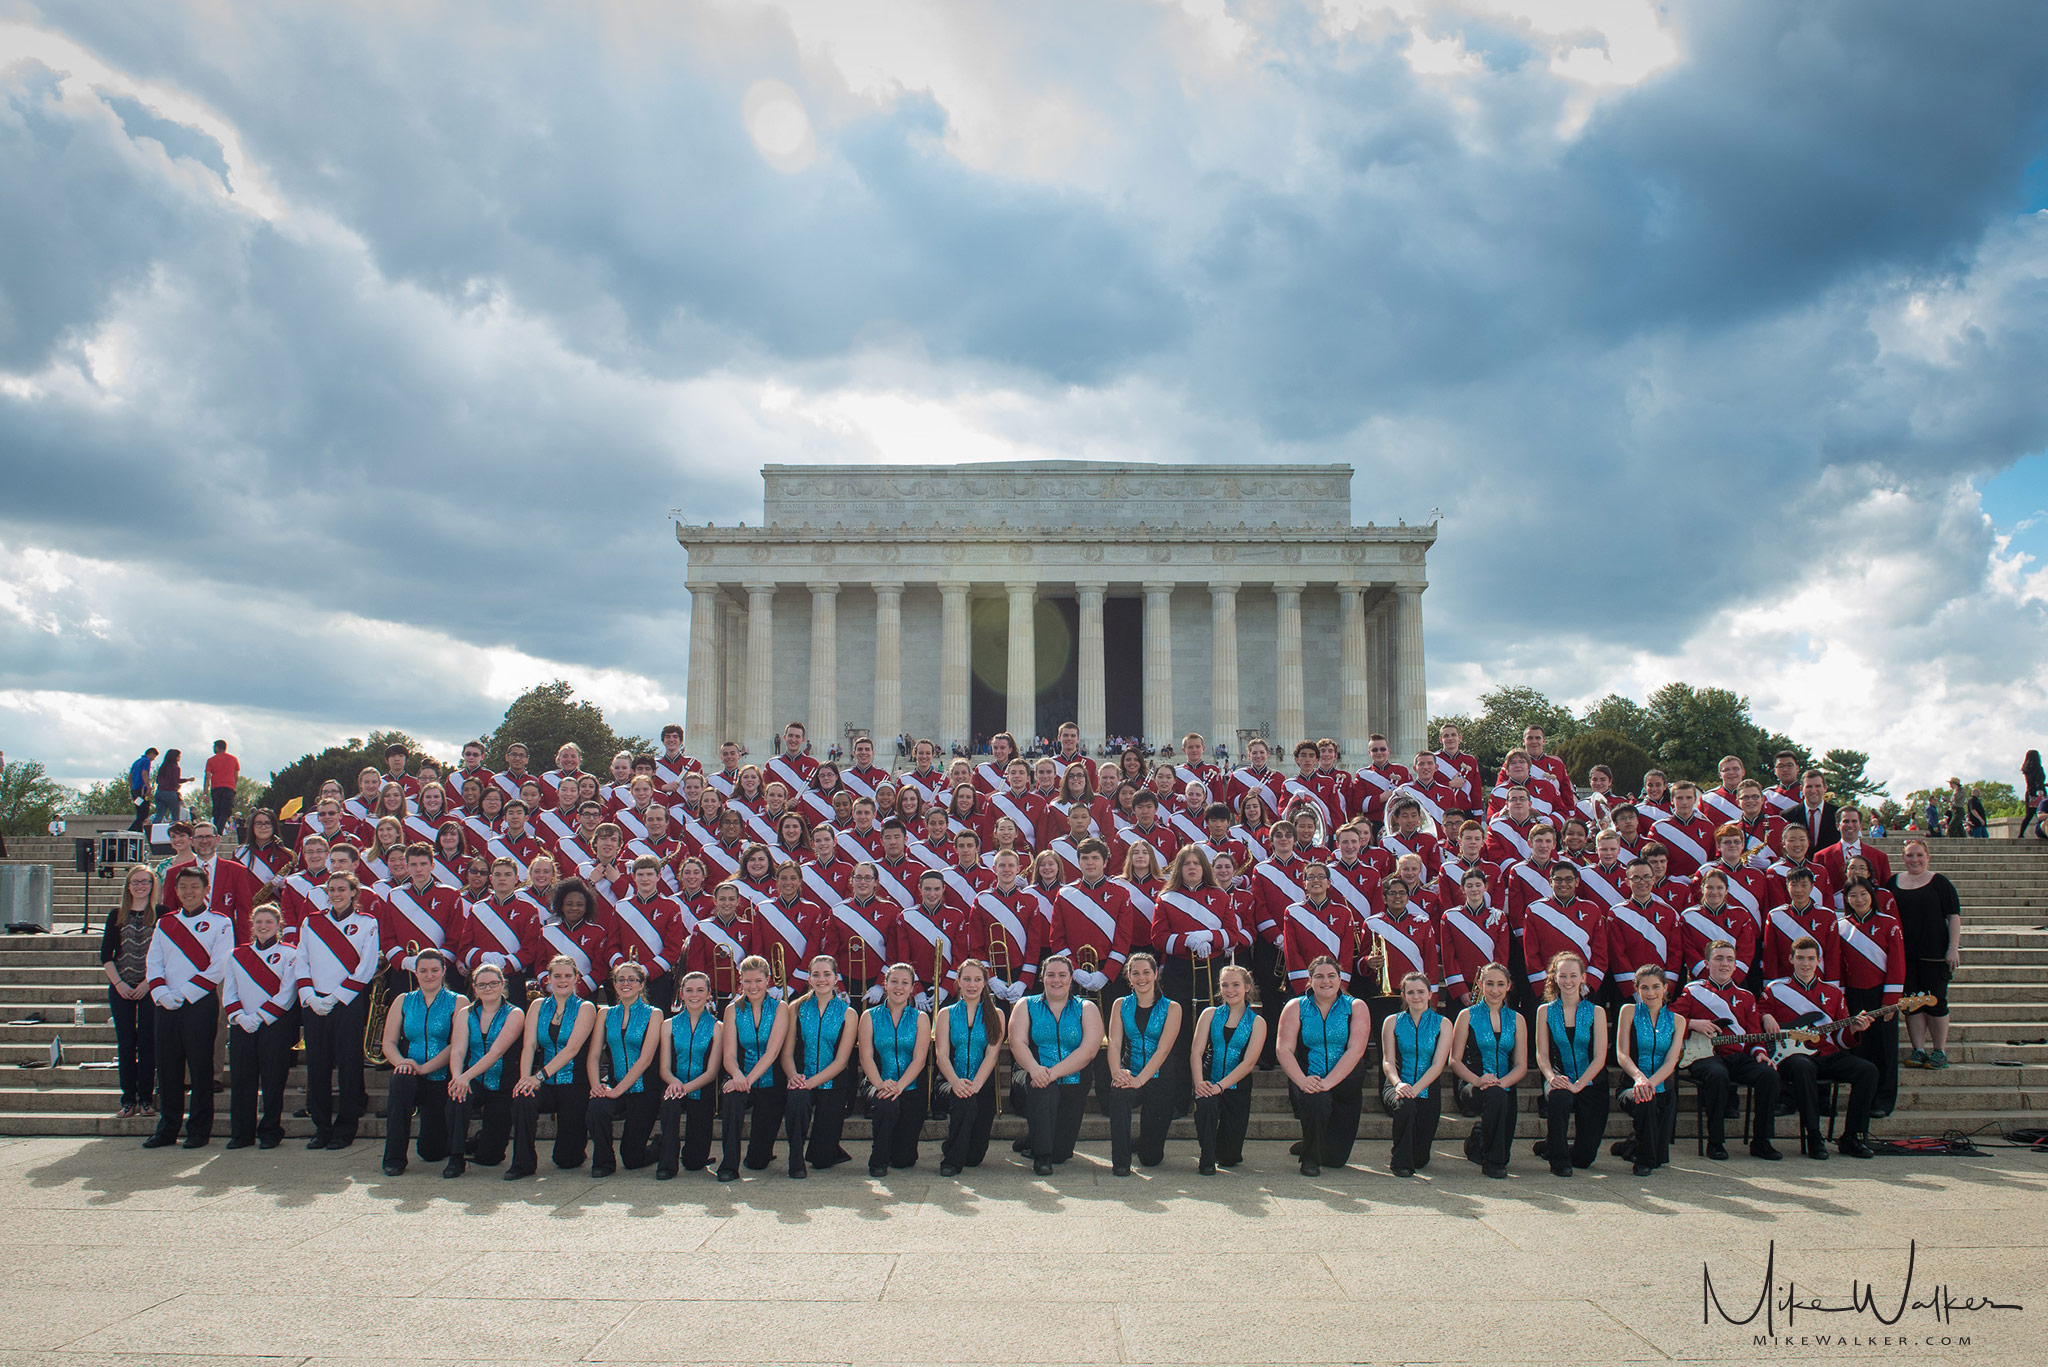 Whippany Park High School's marching band in Washington, D.C. photographed by Mike Walker